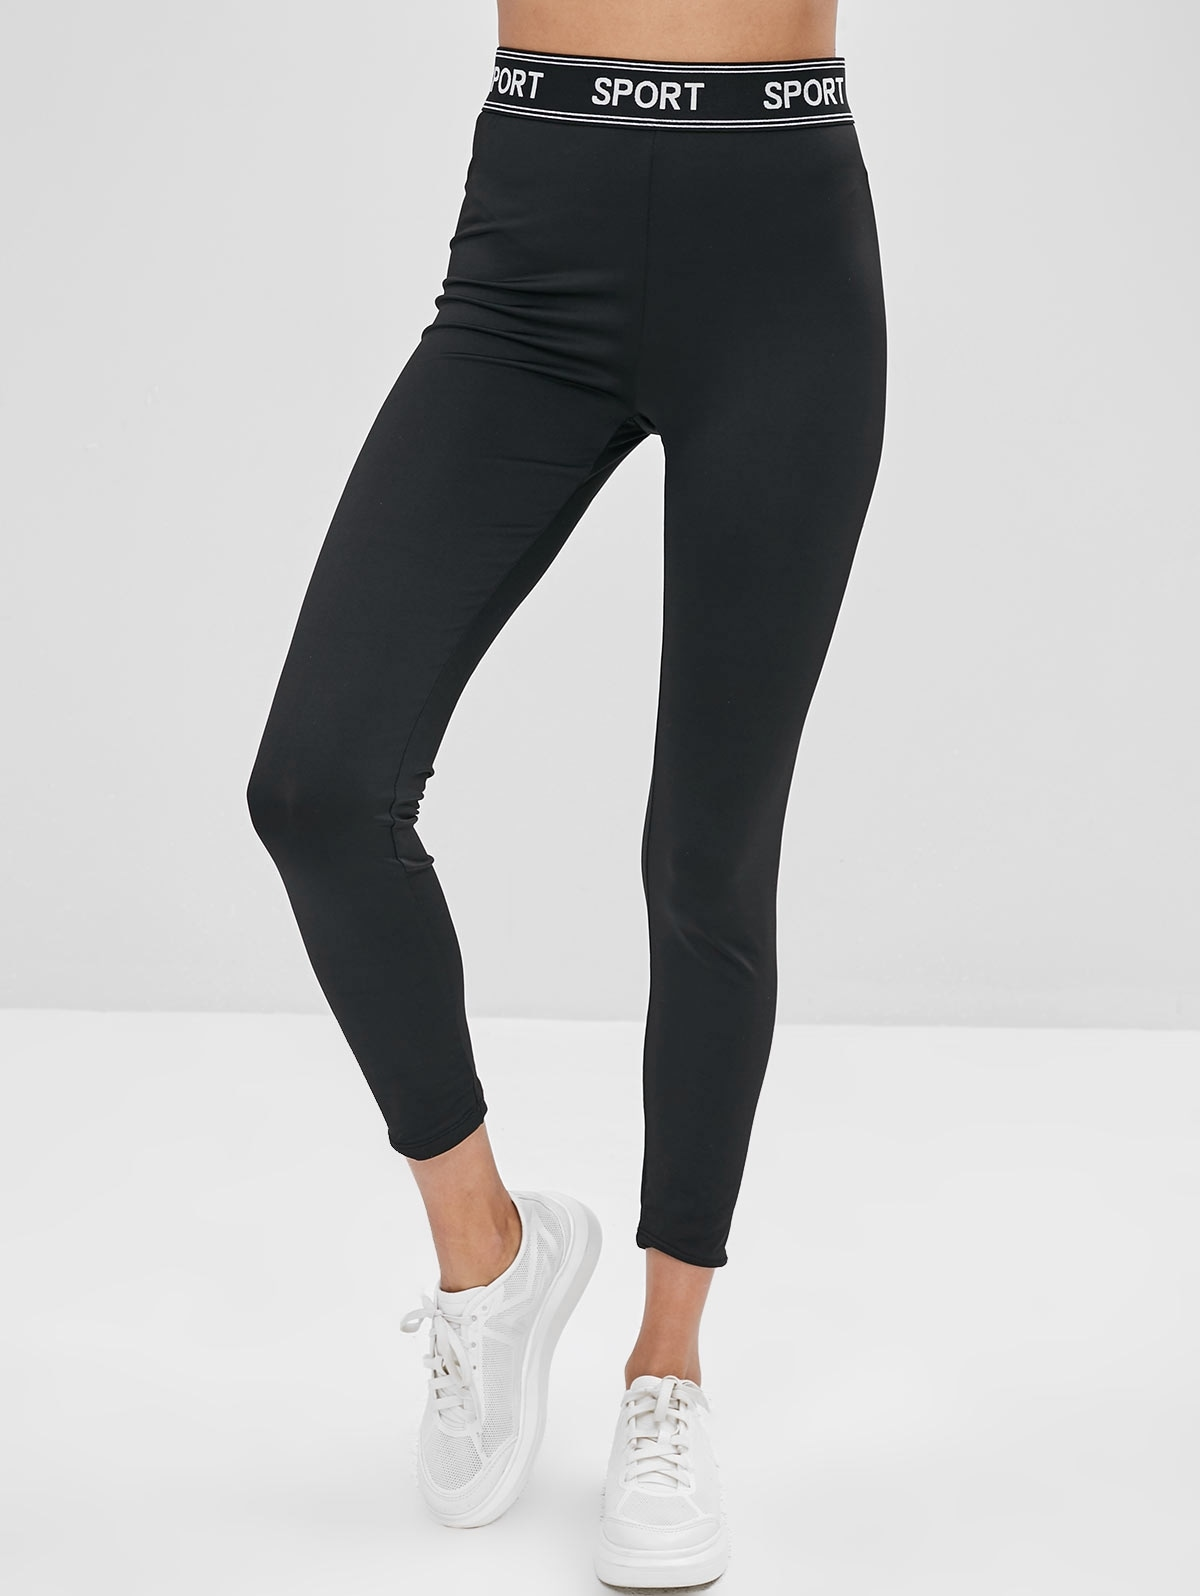 Letter Patched High Waist Leggings